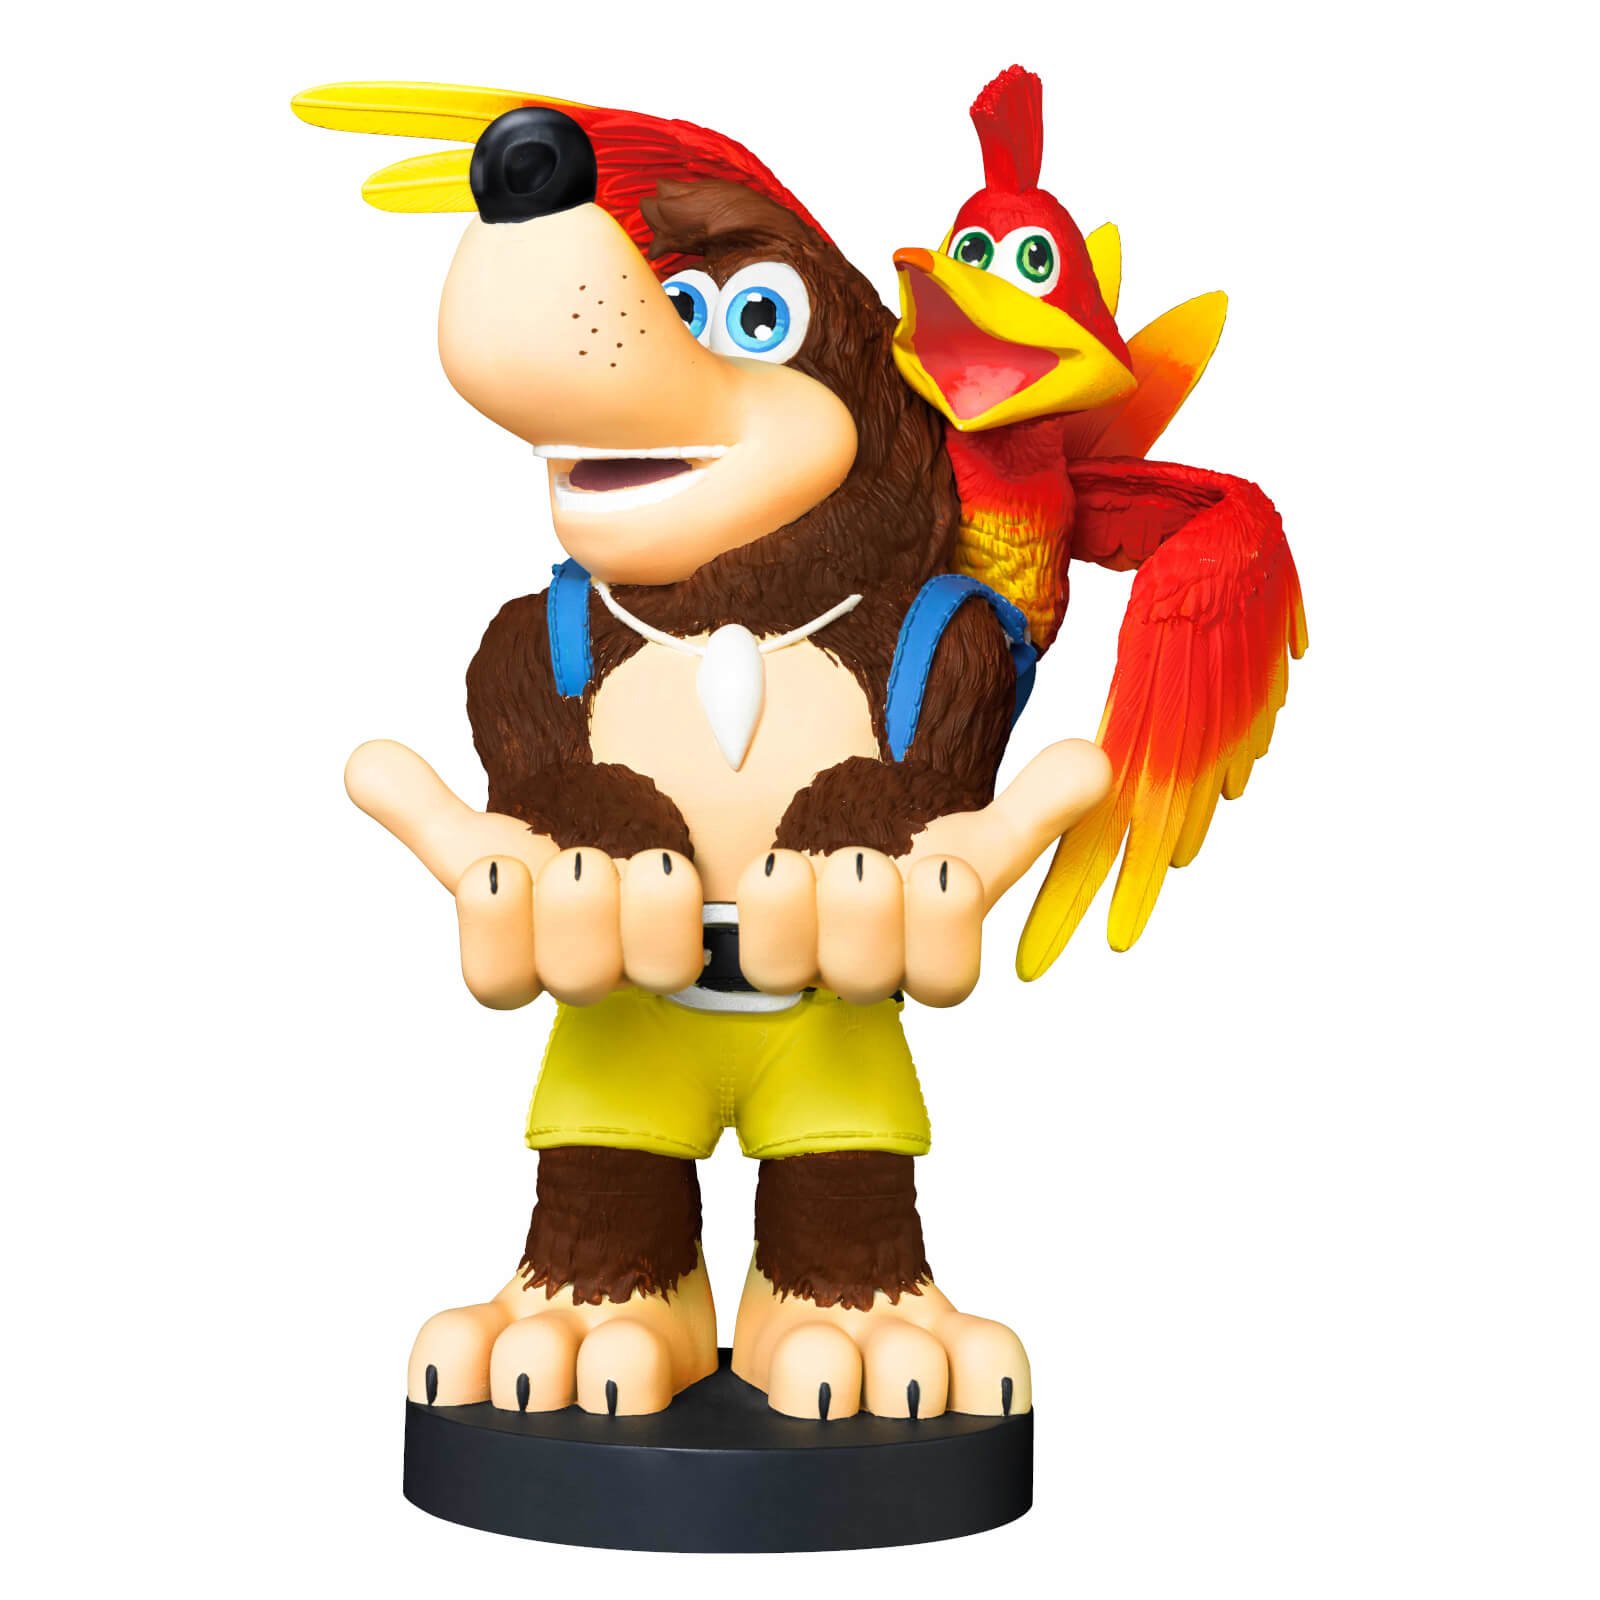 Image of Banjo Kazooie 8 Inch Collectable Cable Guy Controller and Smartphone Stand